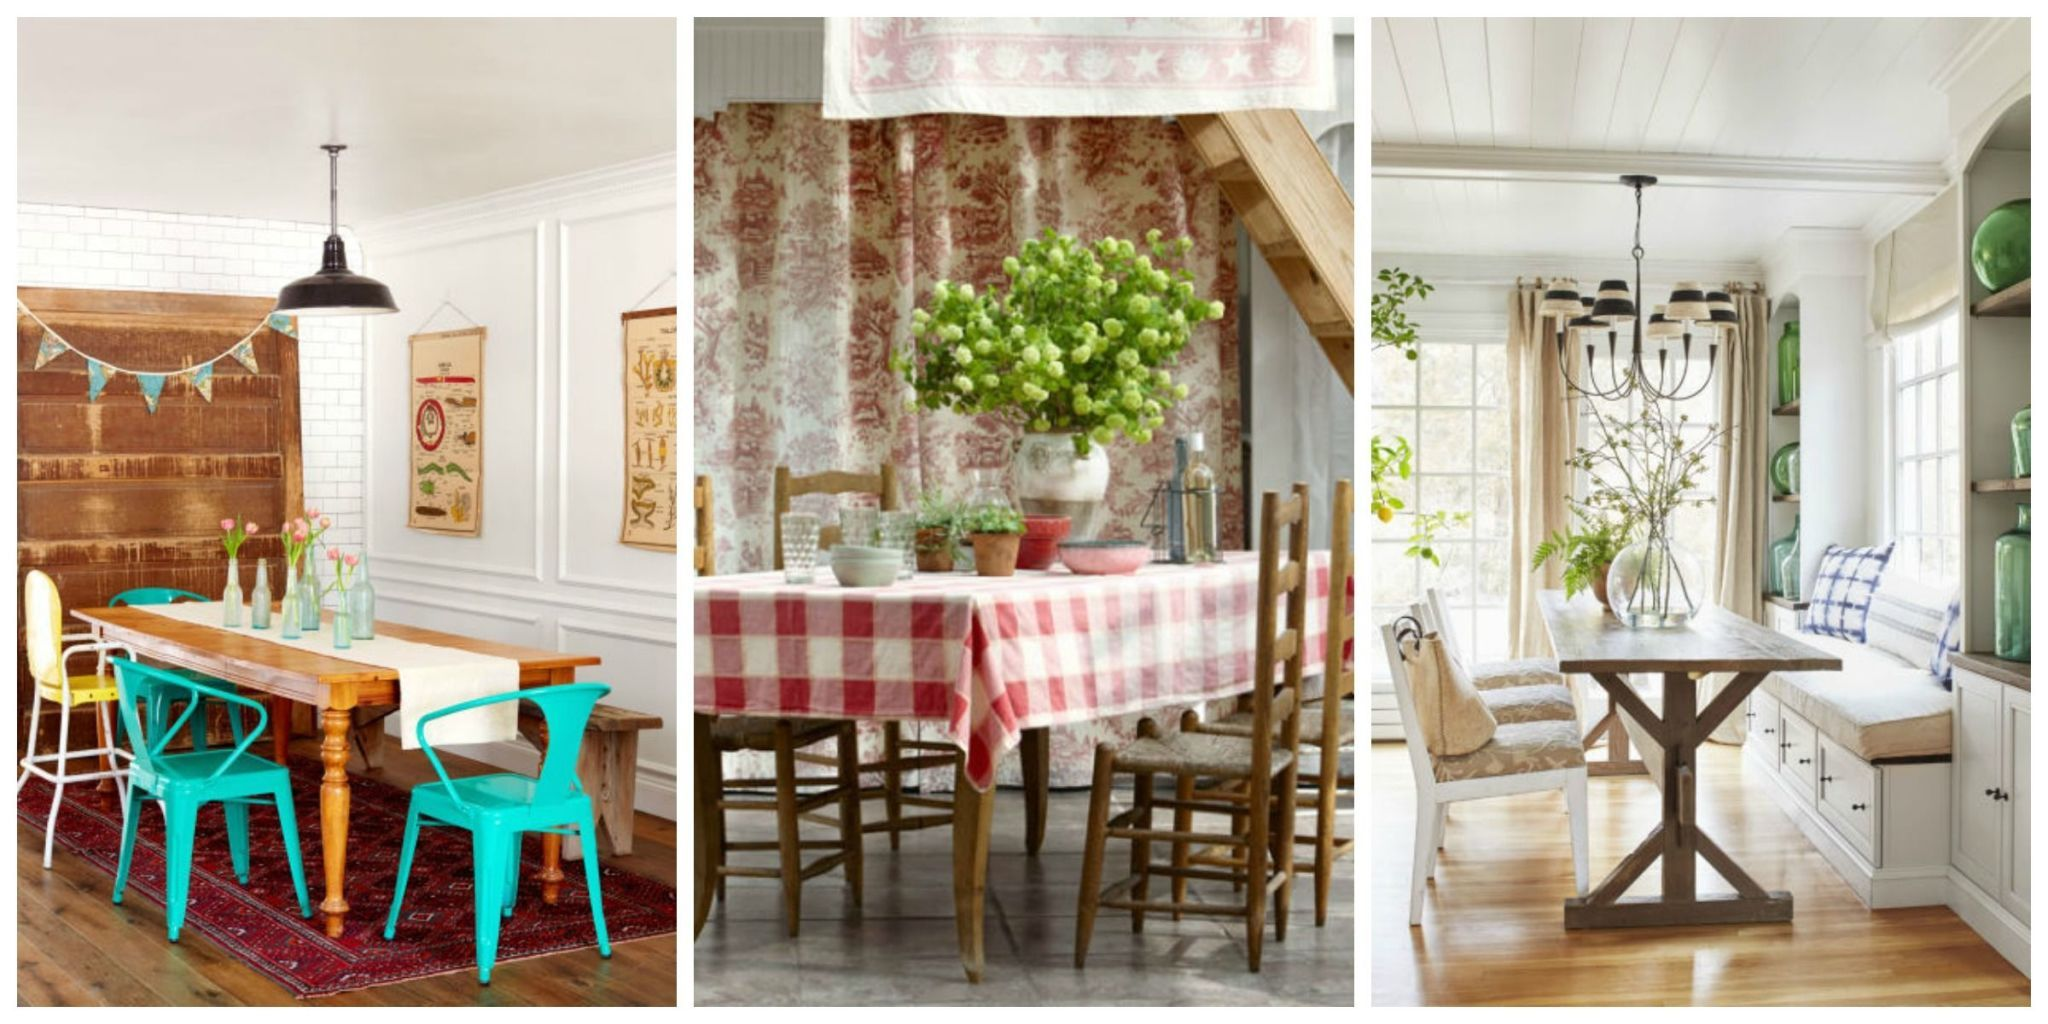 Gentil From Floral Themes To Vintage Furniture, Our Dining Room Design Guide Will  Help You Transform Your Dining Space In No Time. Plus, Makeover Your  Kitchen, ...